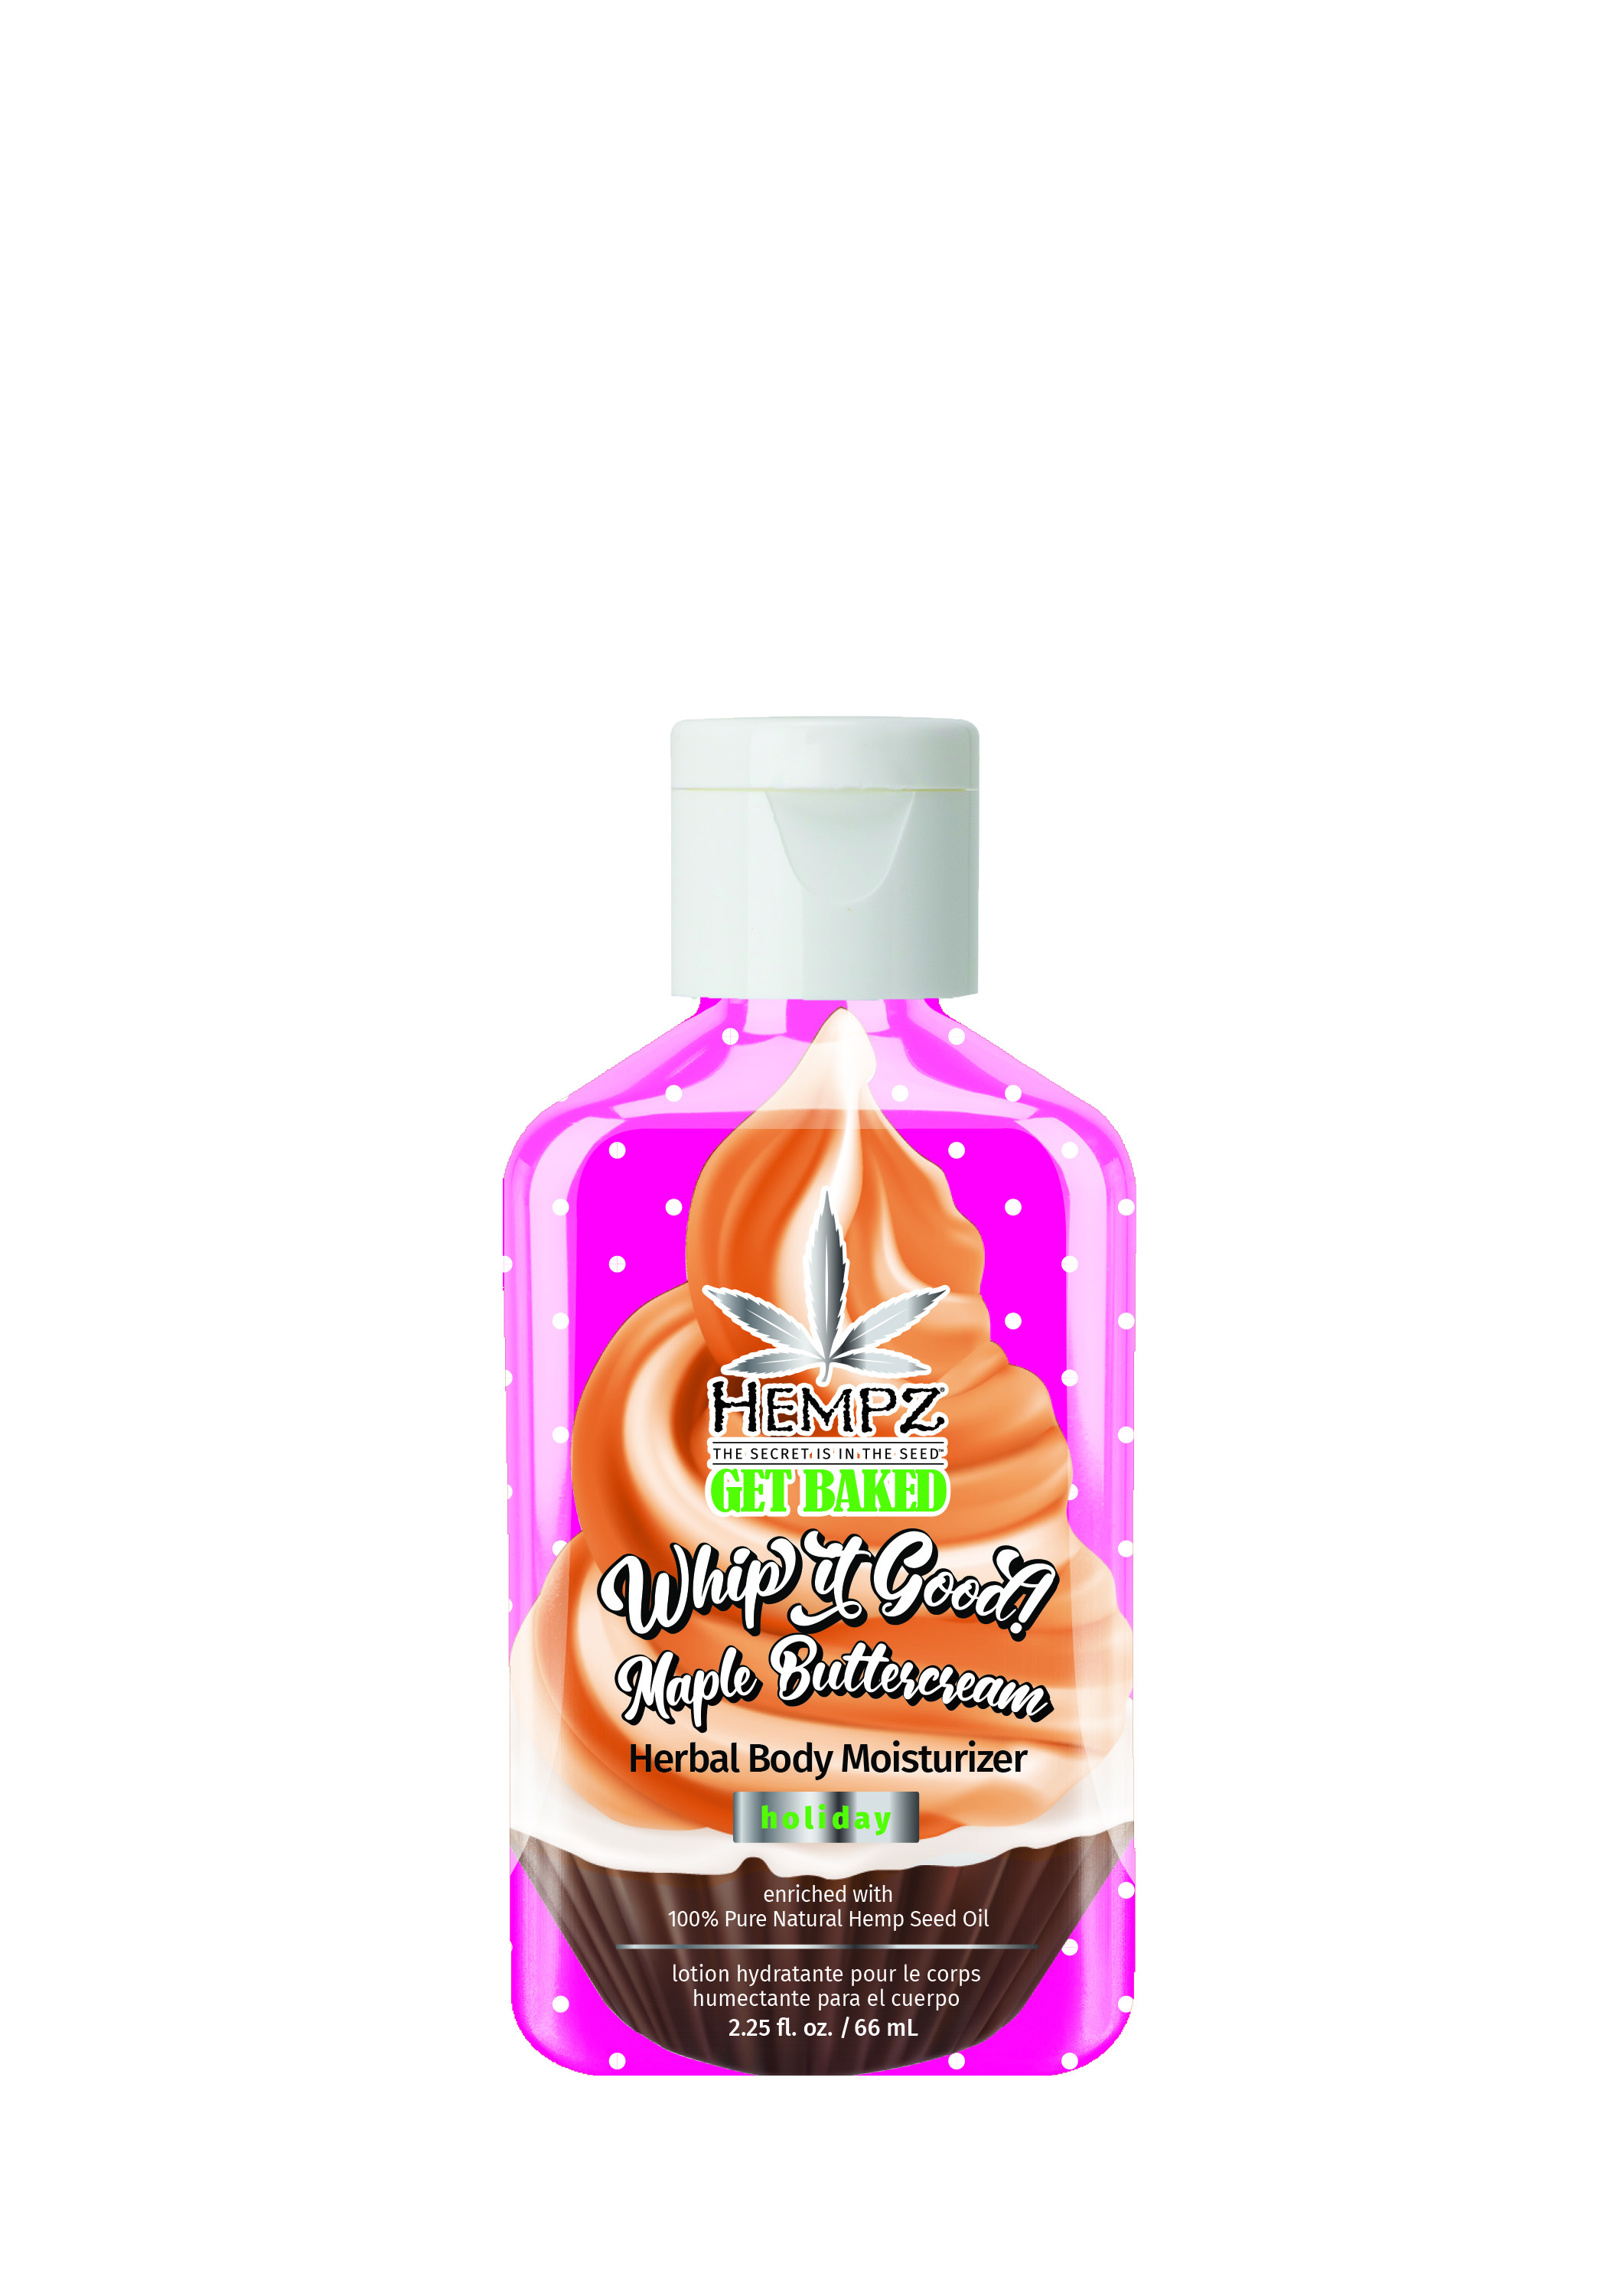 Hempz Maple Buttercream Herbal Body Moisturizer Mini 2.25oz